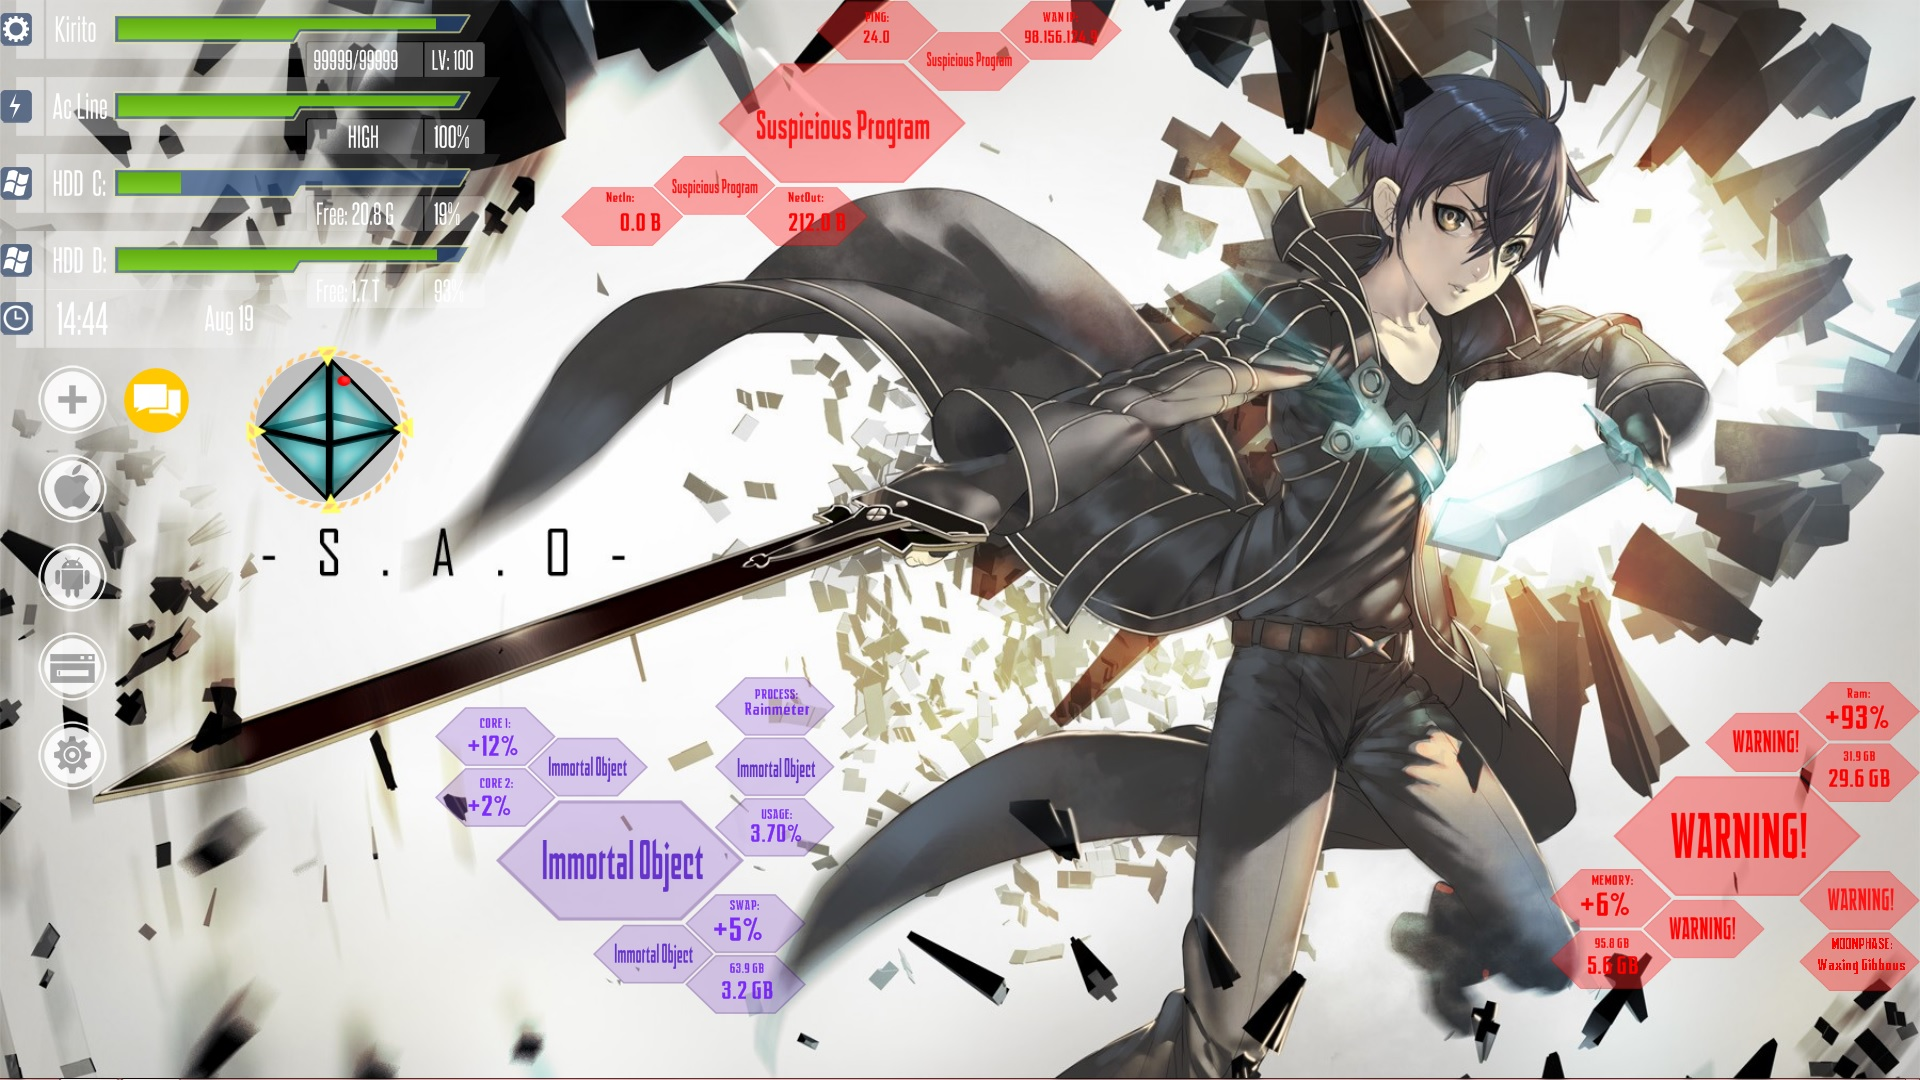 Sao Wallpaper Sao rainmeter custom wallpaper 1920x1080